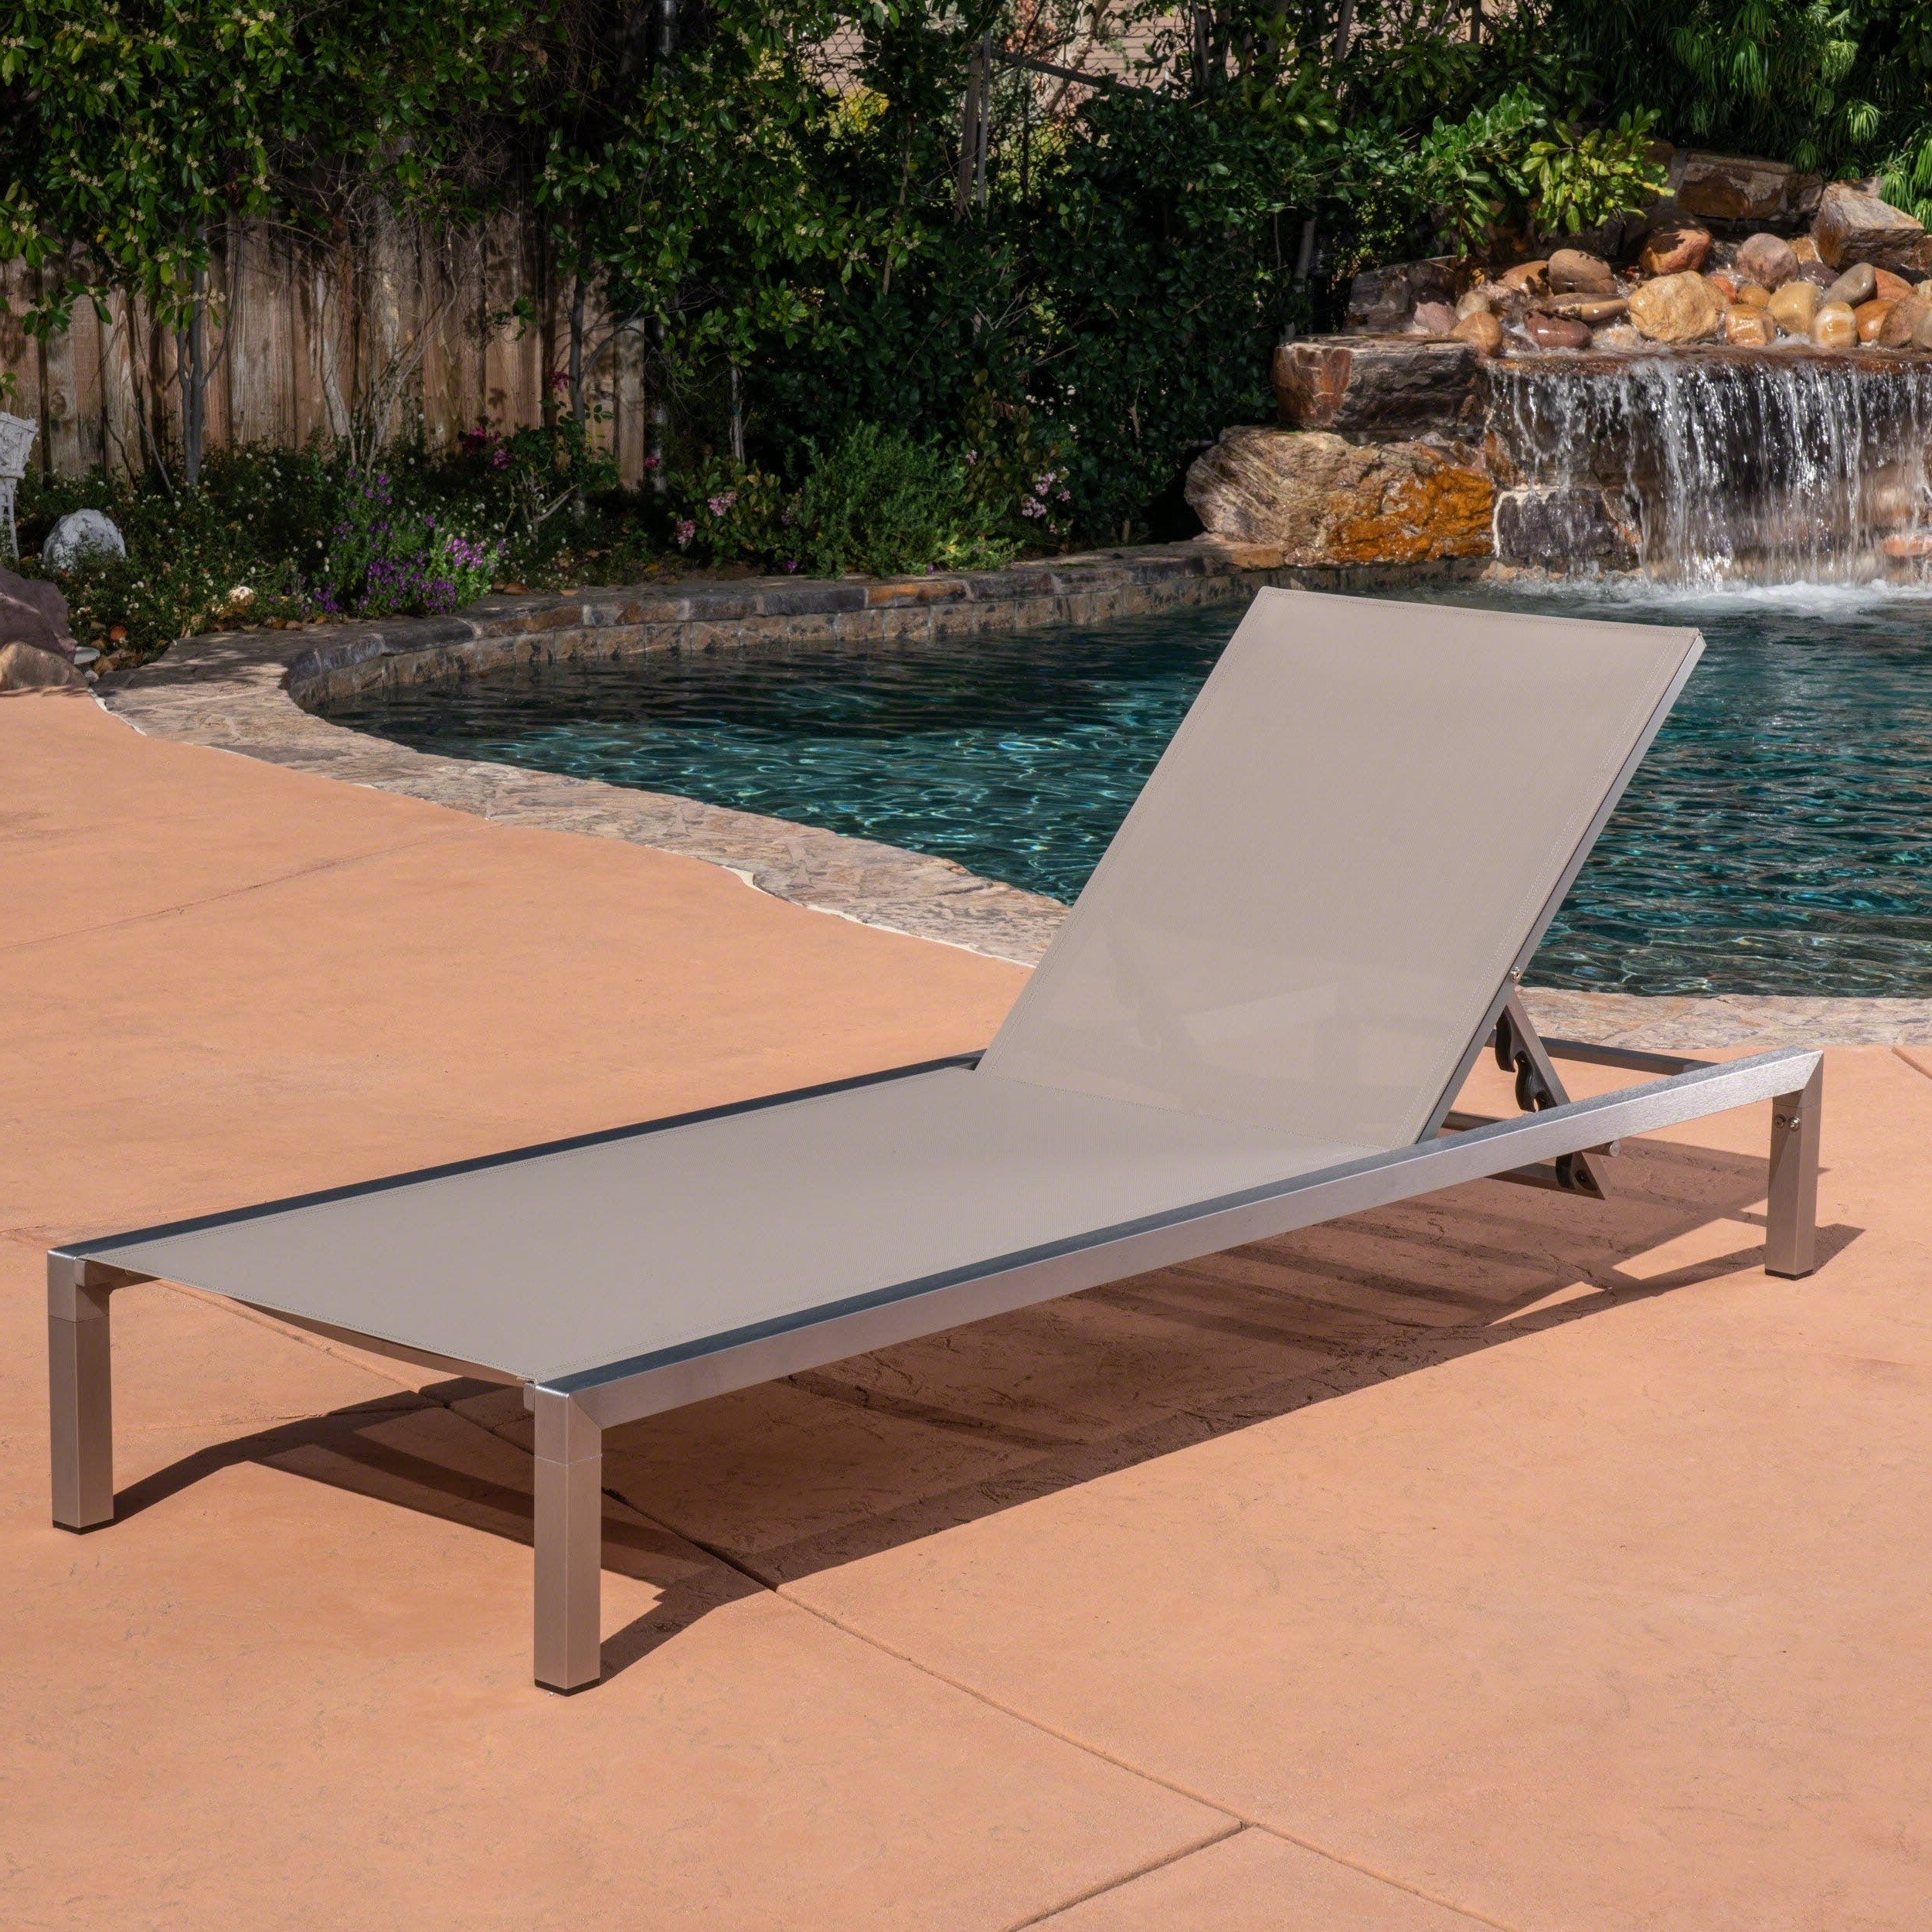 Well Known Navan Outdoor Aluminum Chaise Lounges With Cushion Inside Navan Outdoor Chaise Loungechristopher Knight Home (View 9 of 25)